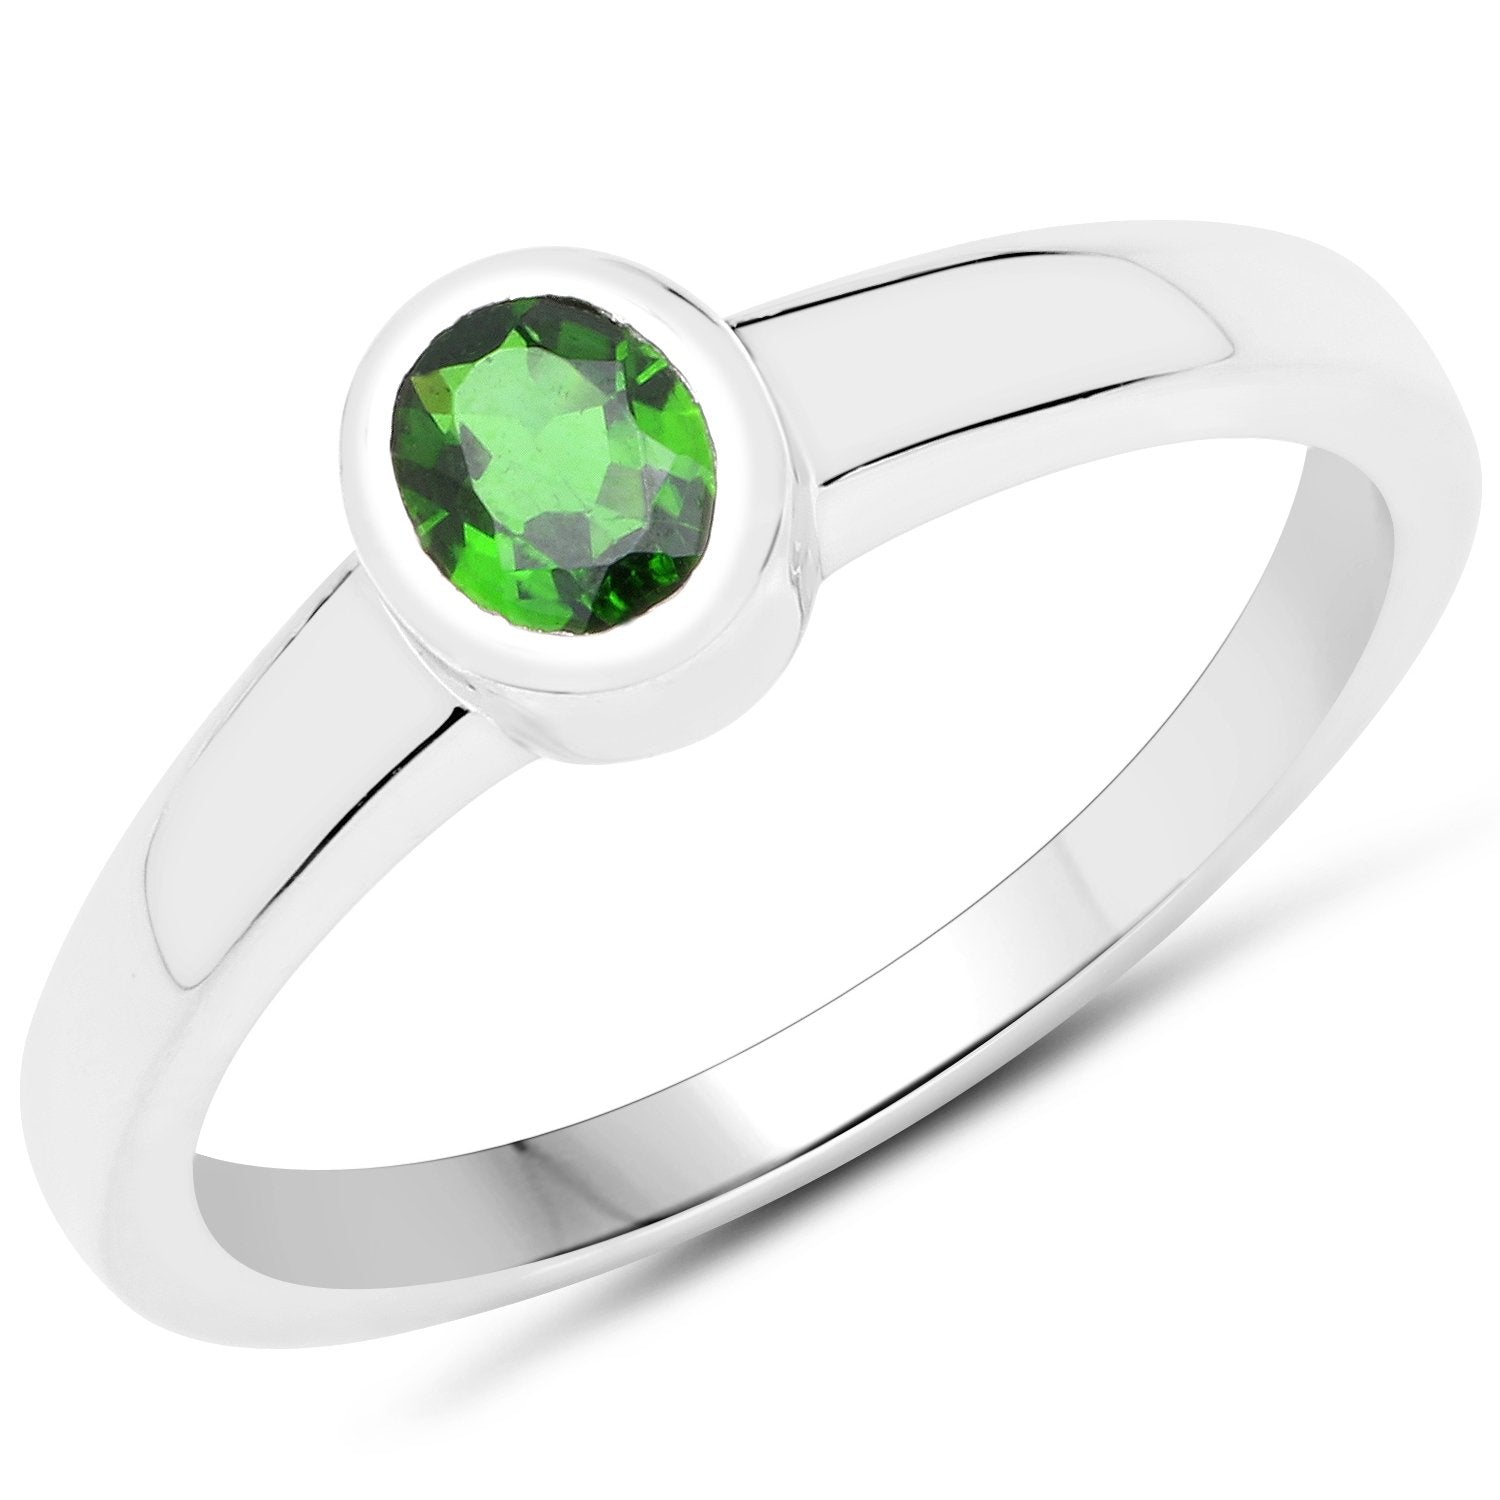 LoveHuang 0.30 Carats Genuine Chrome Diopside Oval Bezel Ring Solid .925 Sterling Silver With Rhodium Plating